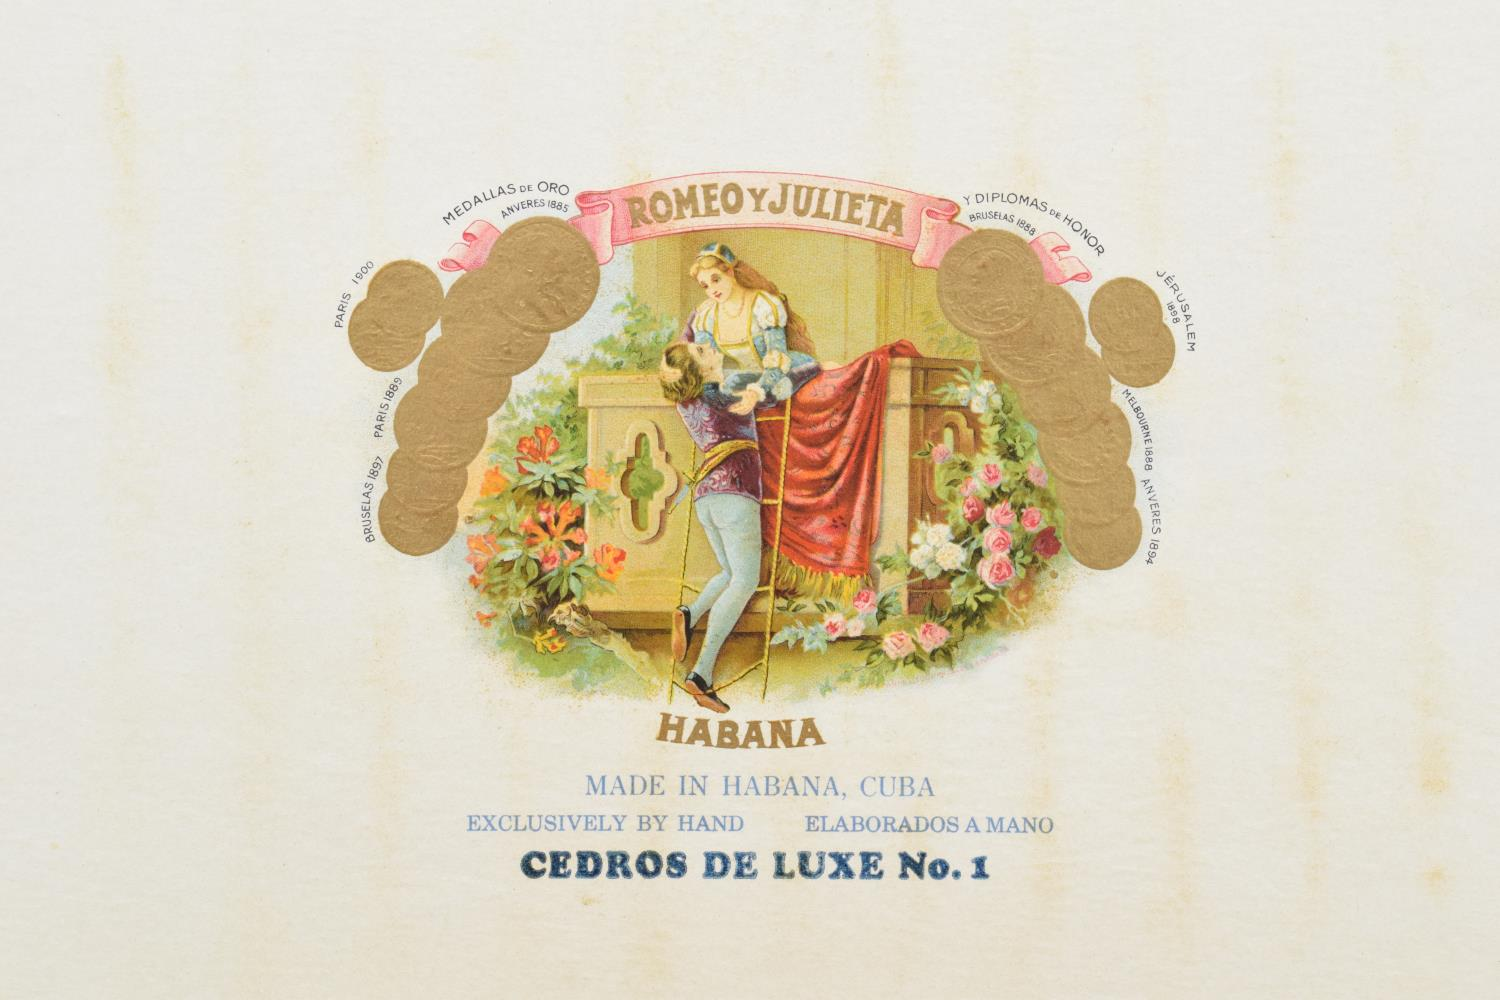 A cased set of 25 Romeo y Julieta Cedros De Luxe No.1 cigars made in Habana, Cuba. Appear to be in - Image 4 of 11